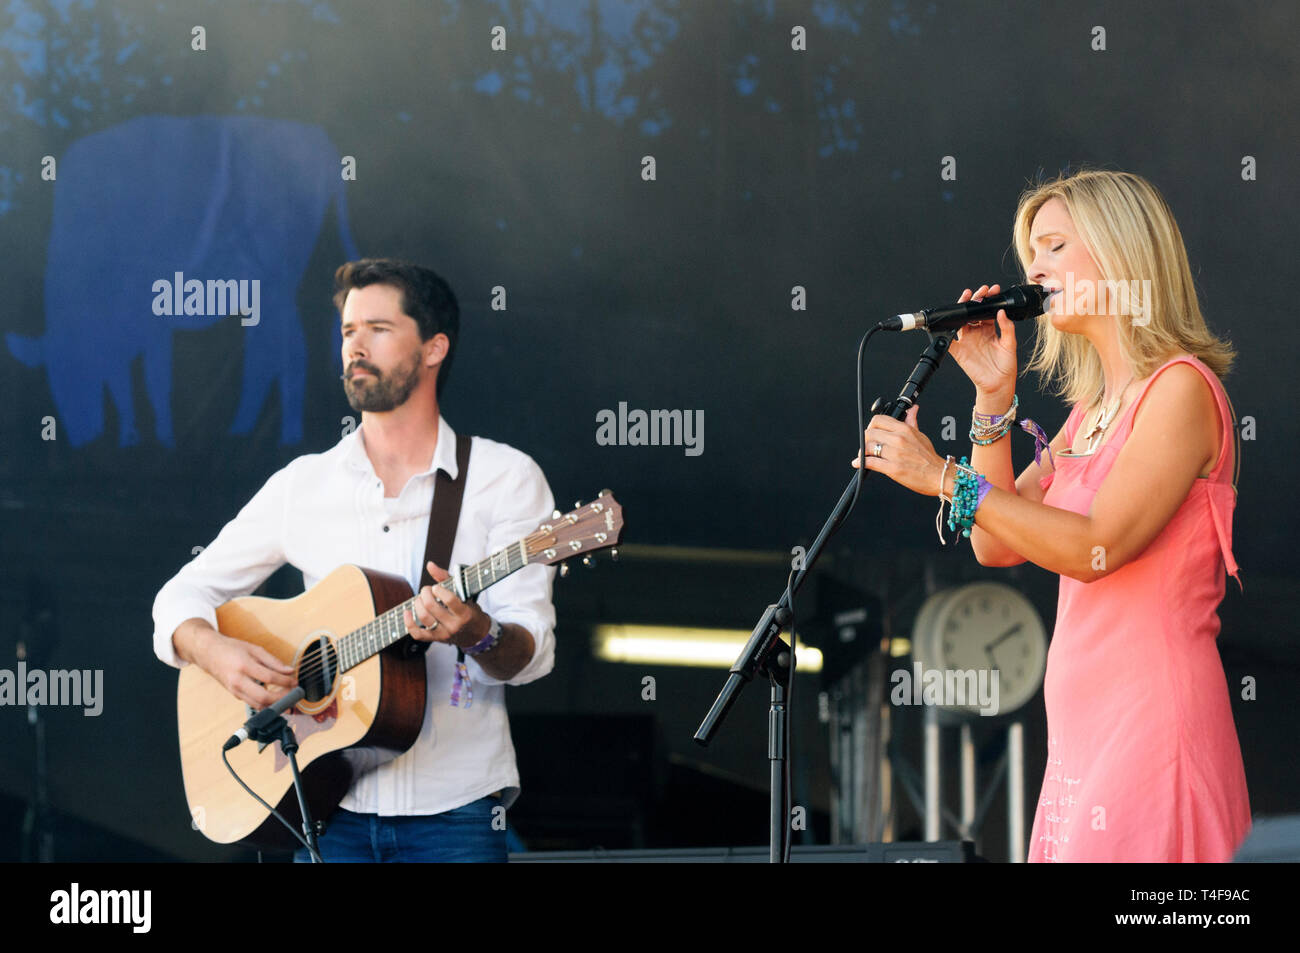 Sam Lakeman and Cara Dillon performing at the Cropredy Festival, UK. August 9, 2014. - Stock Image